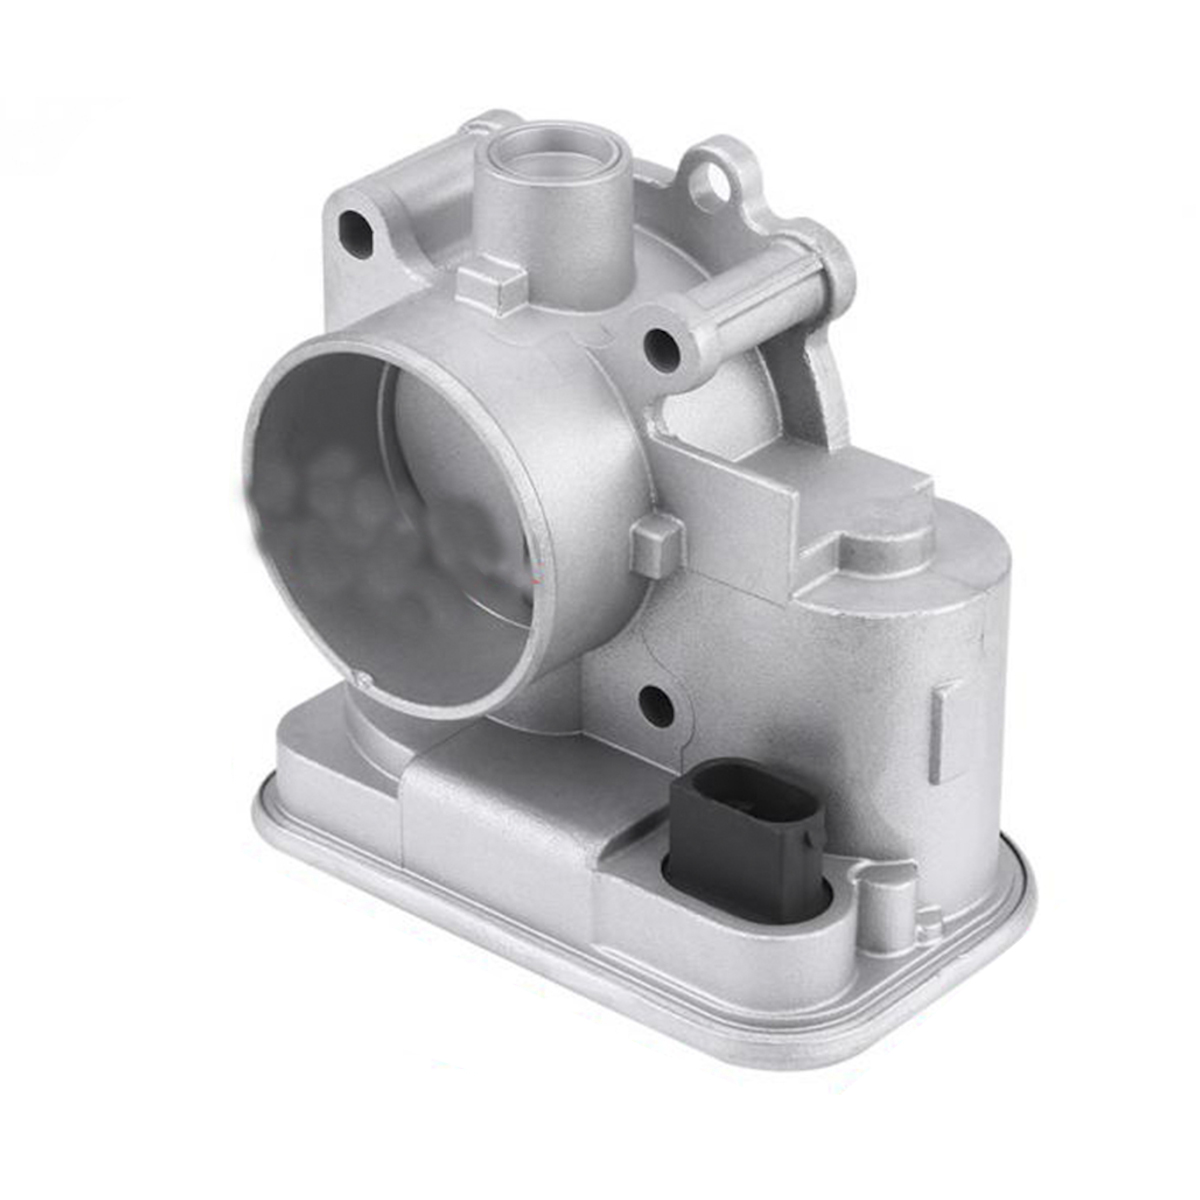 Throttle Body For Jeep Compass Chrysler 200 Dodge Caliber 1.8L 2.0L 04891735AC